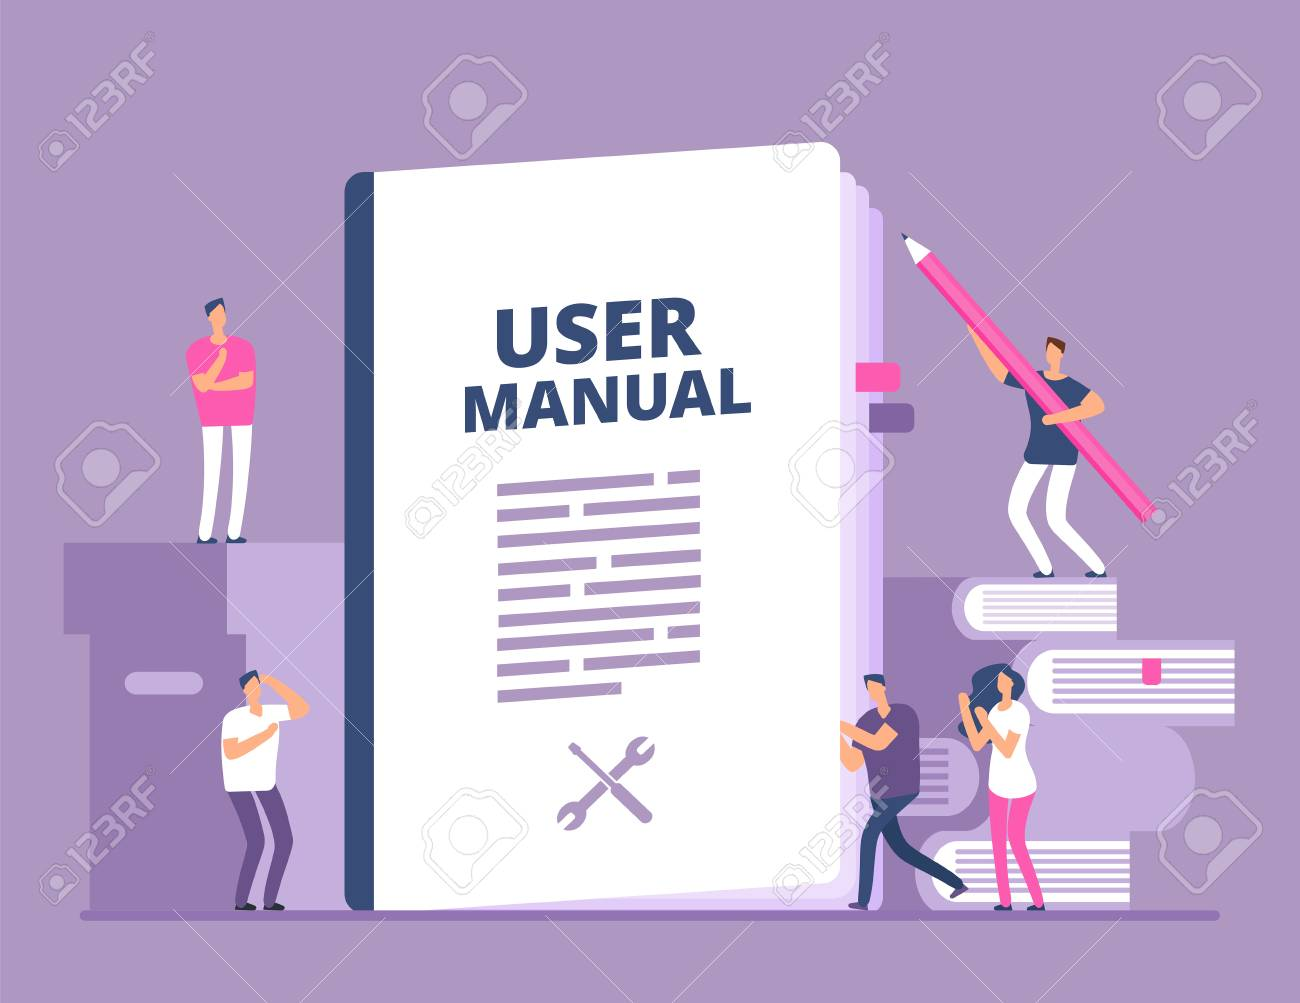 User manual concept. People with guide instruction or textbooks. User reading guidebook and writting guidance. Vector illustration. Manual book instruction, handbook help guide - 110493050